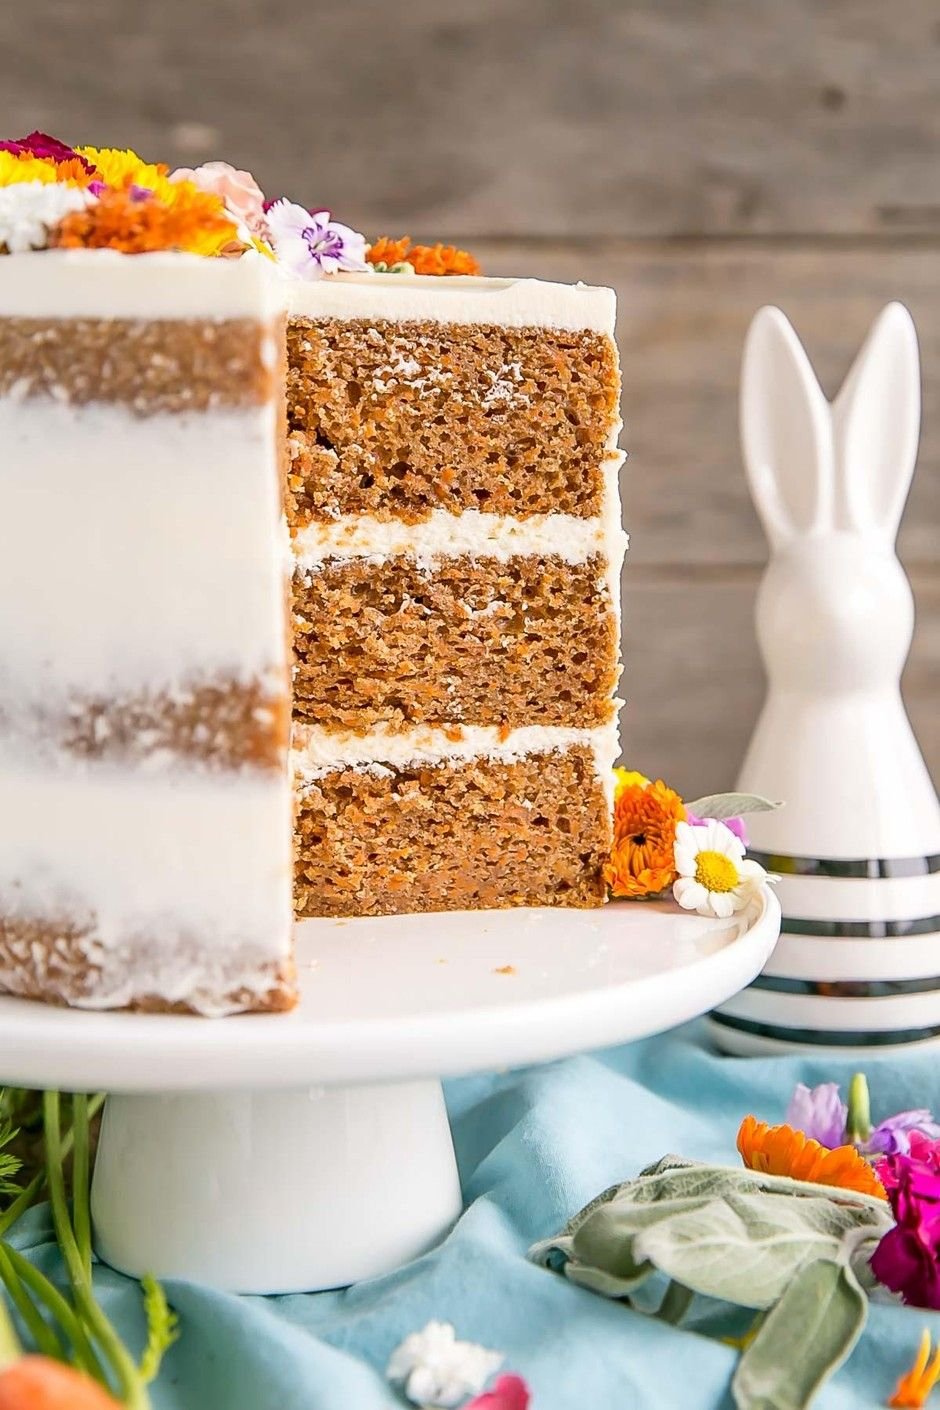 55 unique wedding cake flavours your guests will never